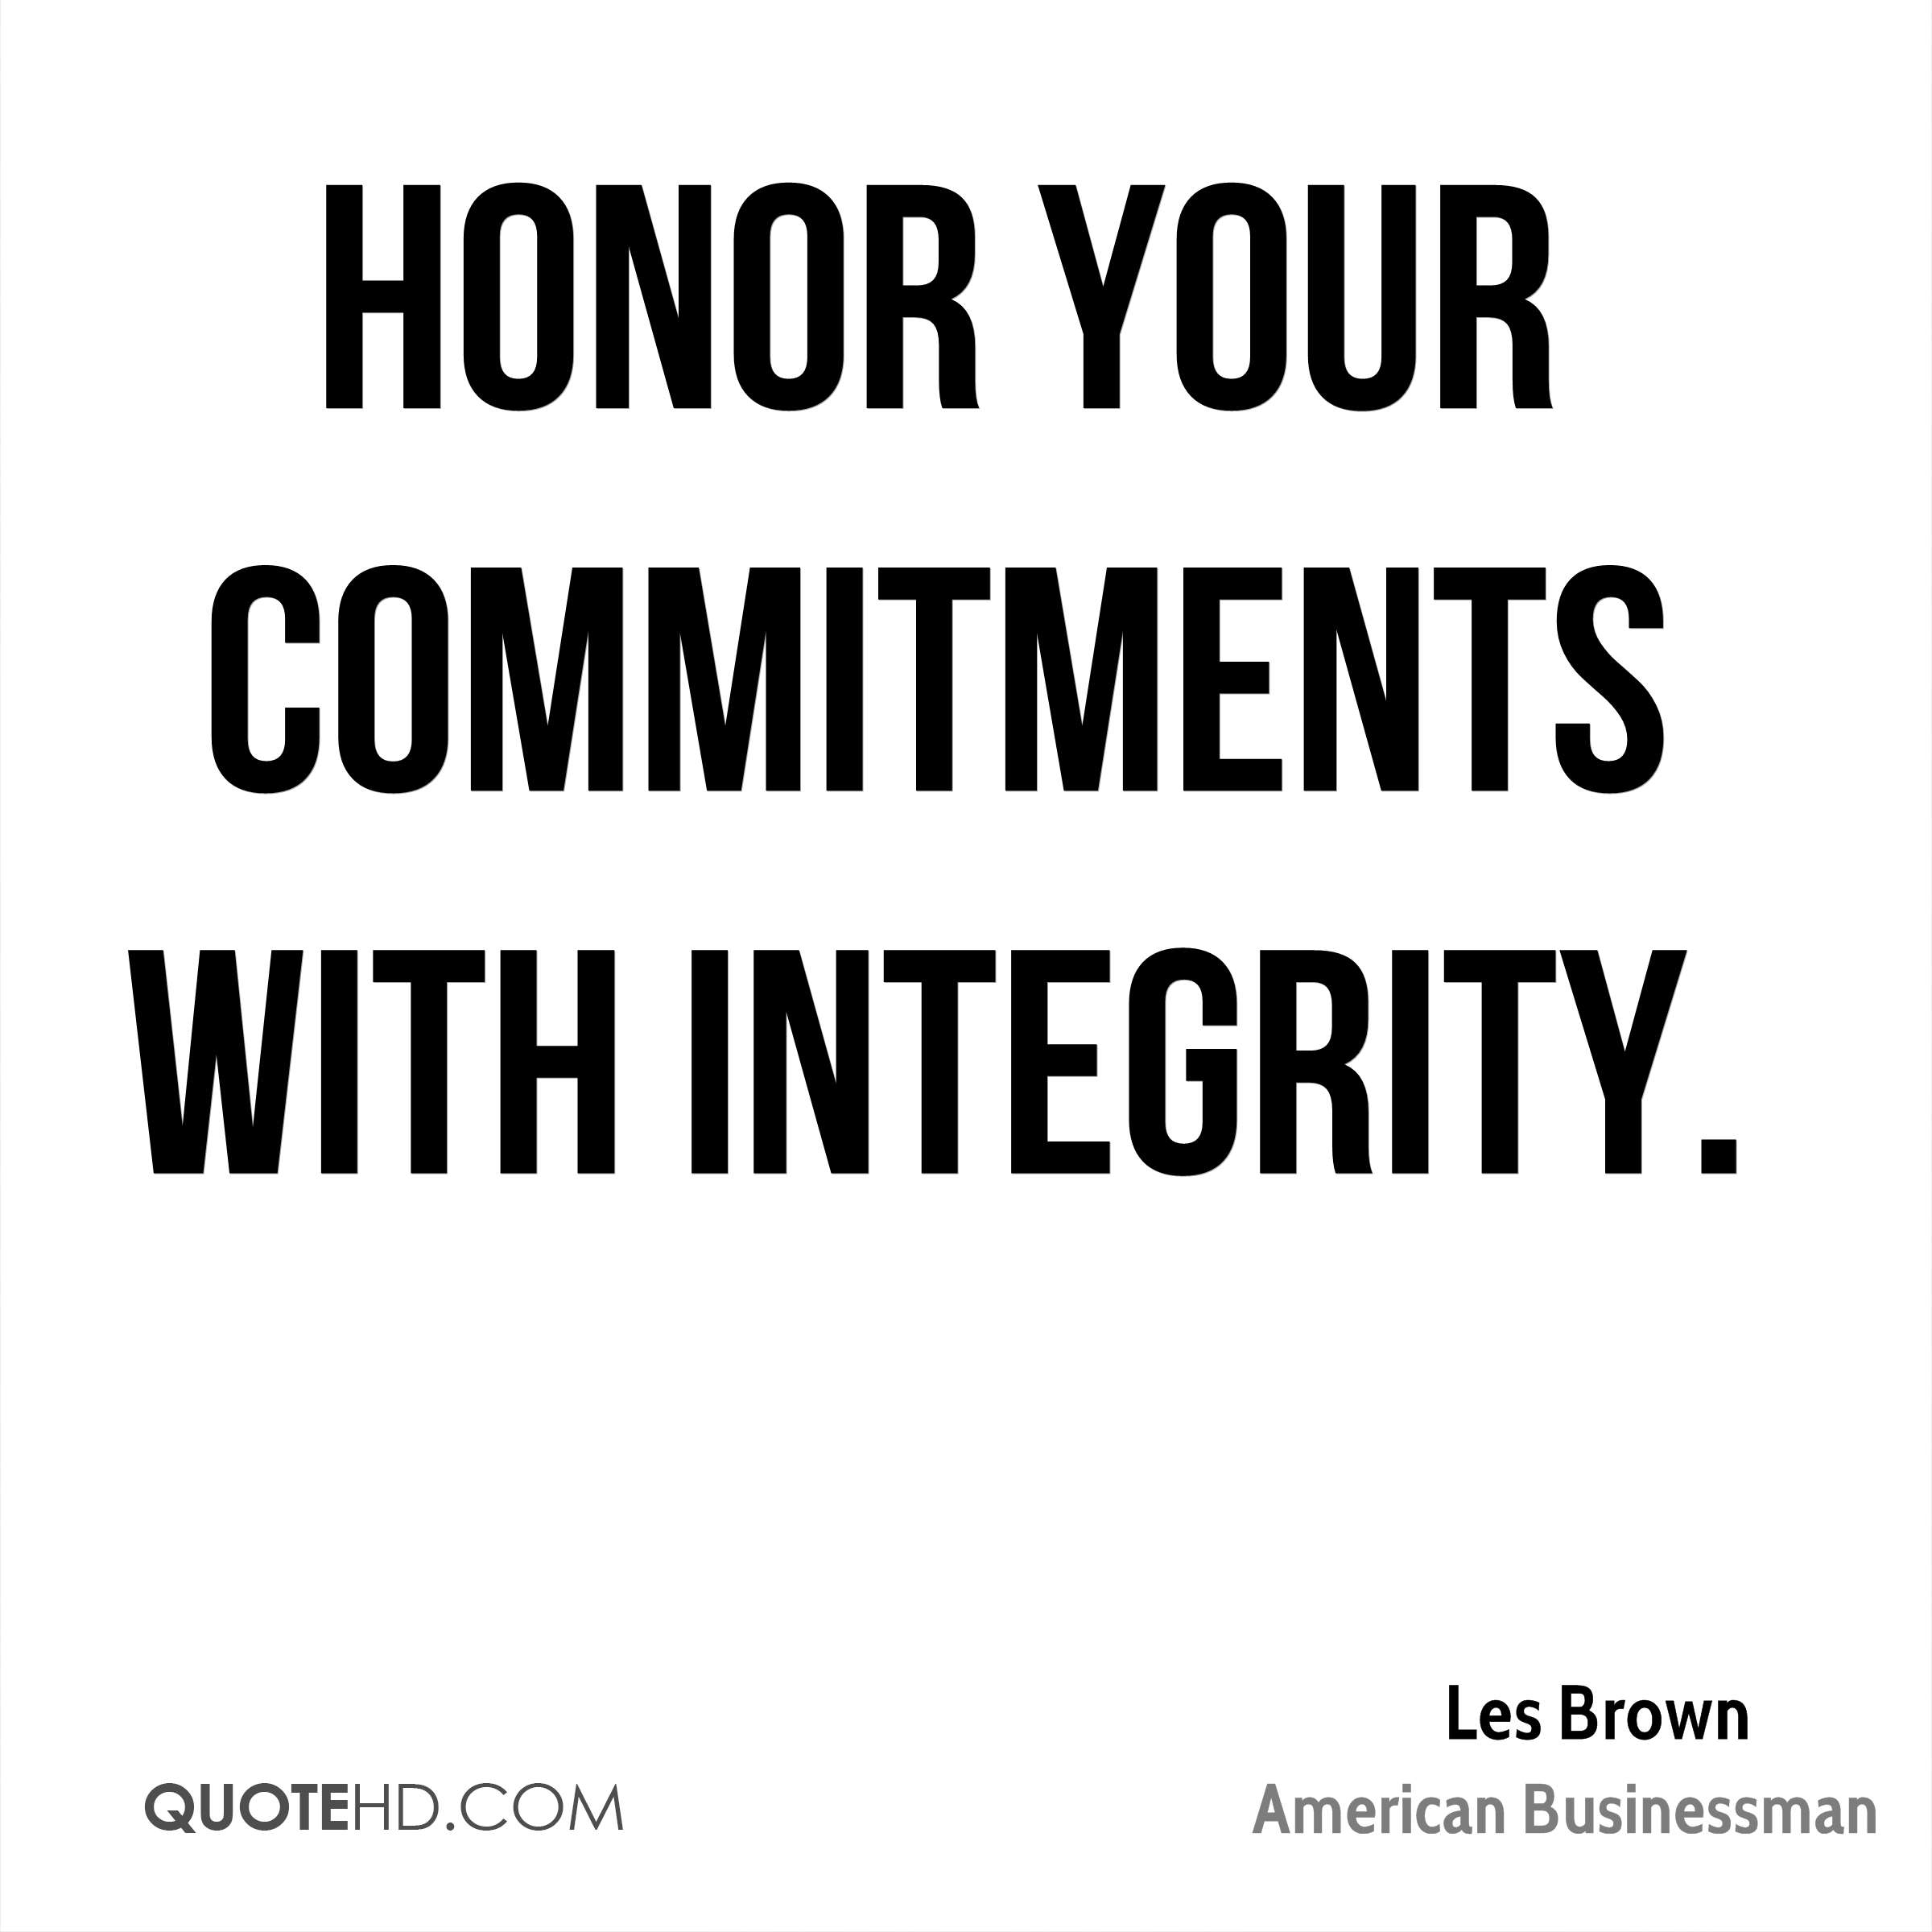 Honor your commitments with integrity.